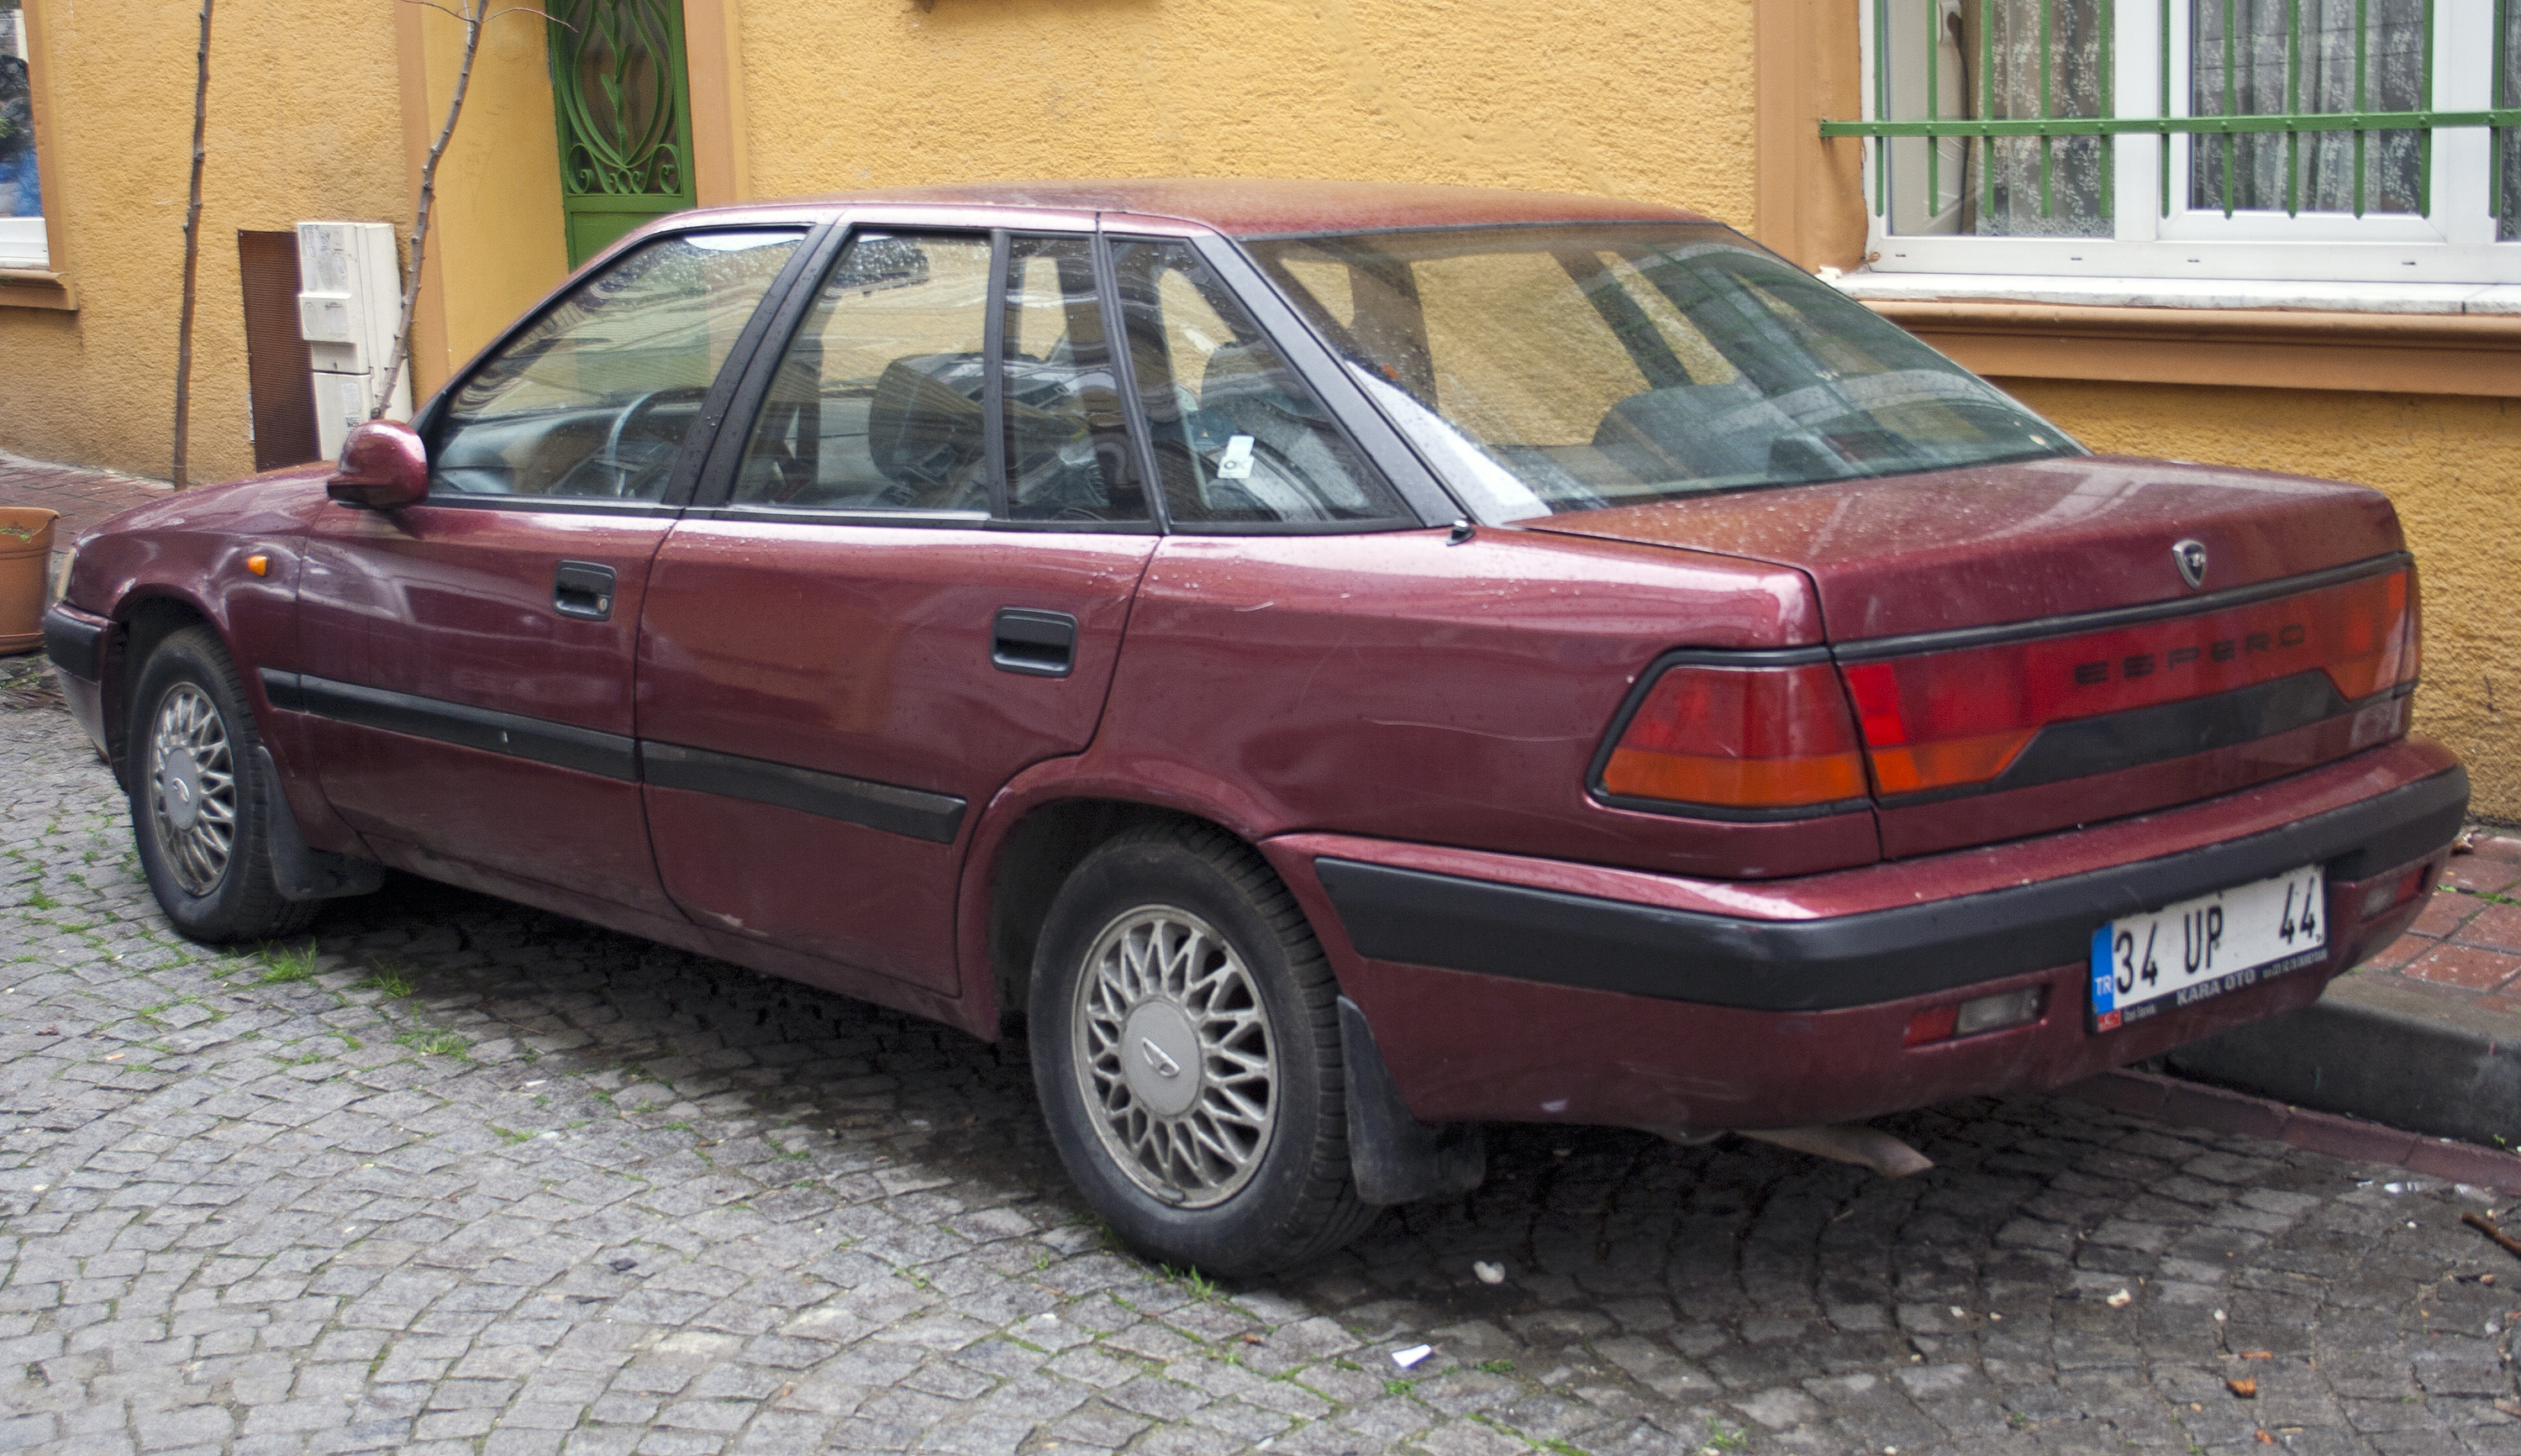 File:Daewoo Espero (Turkey).jpg - Wikimedia Commons